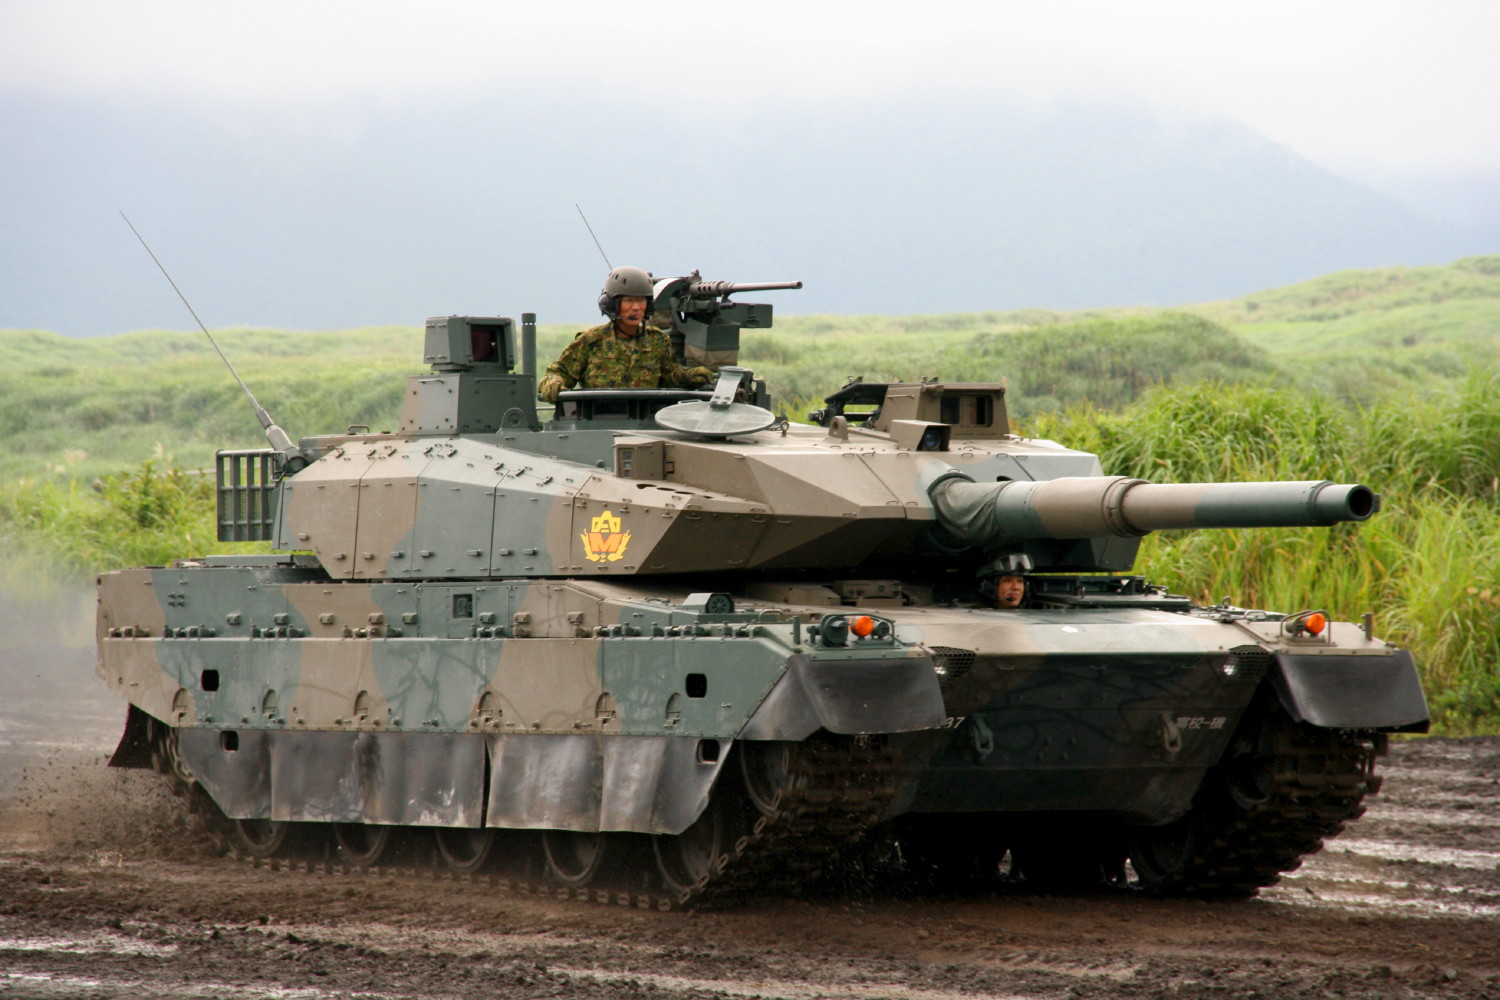 Japanese type 10 main battle tank (mbt) debuts in military exercise